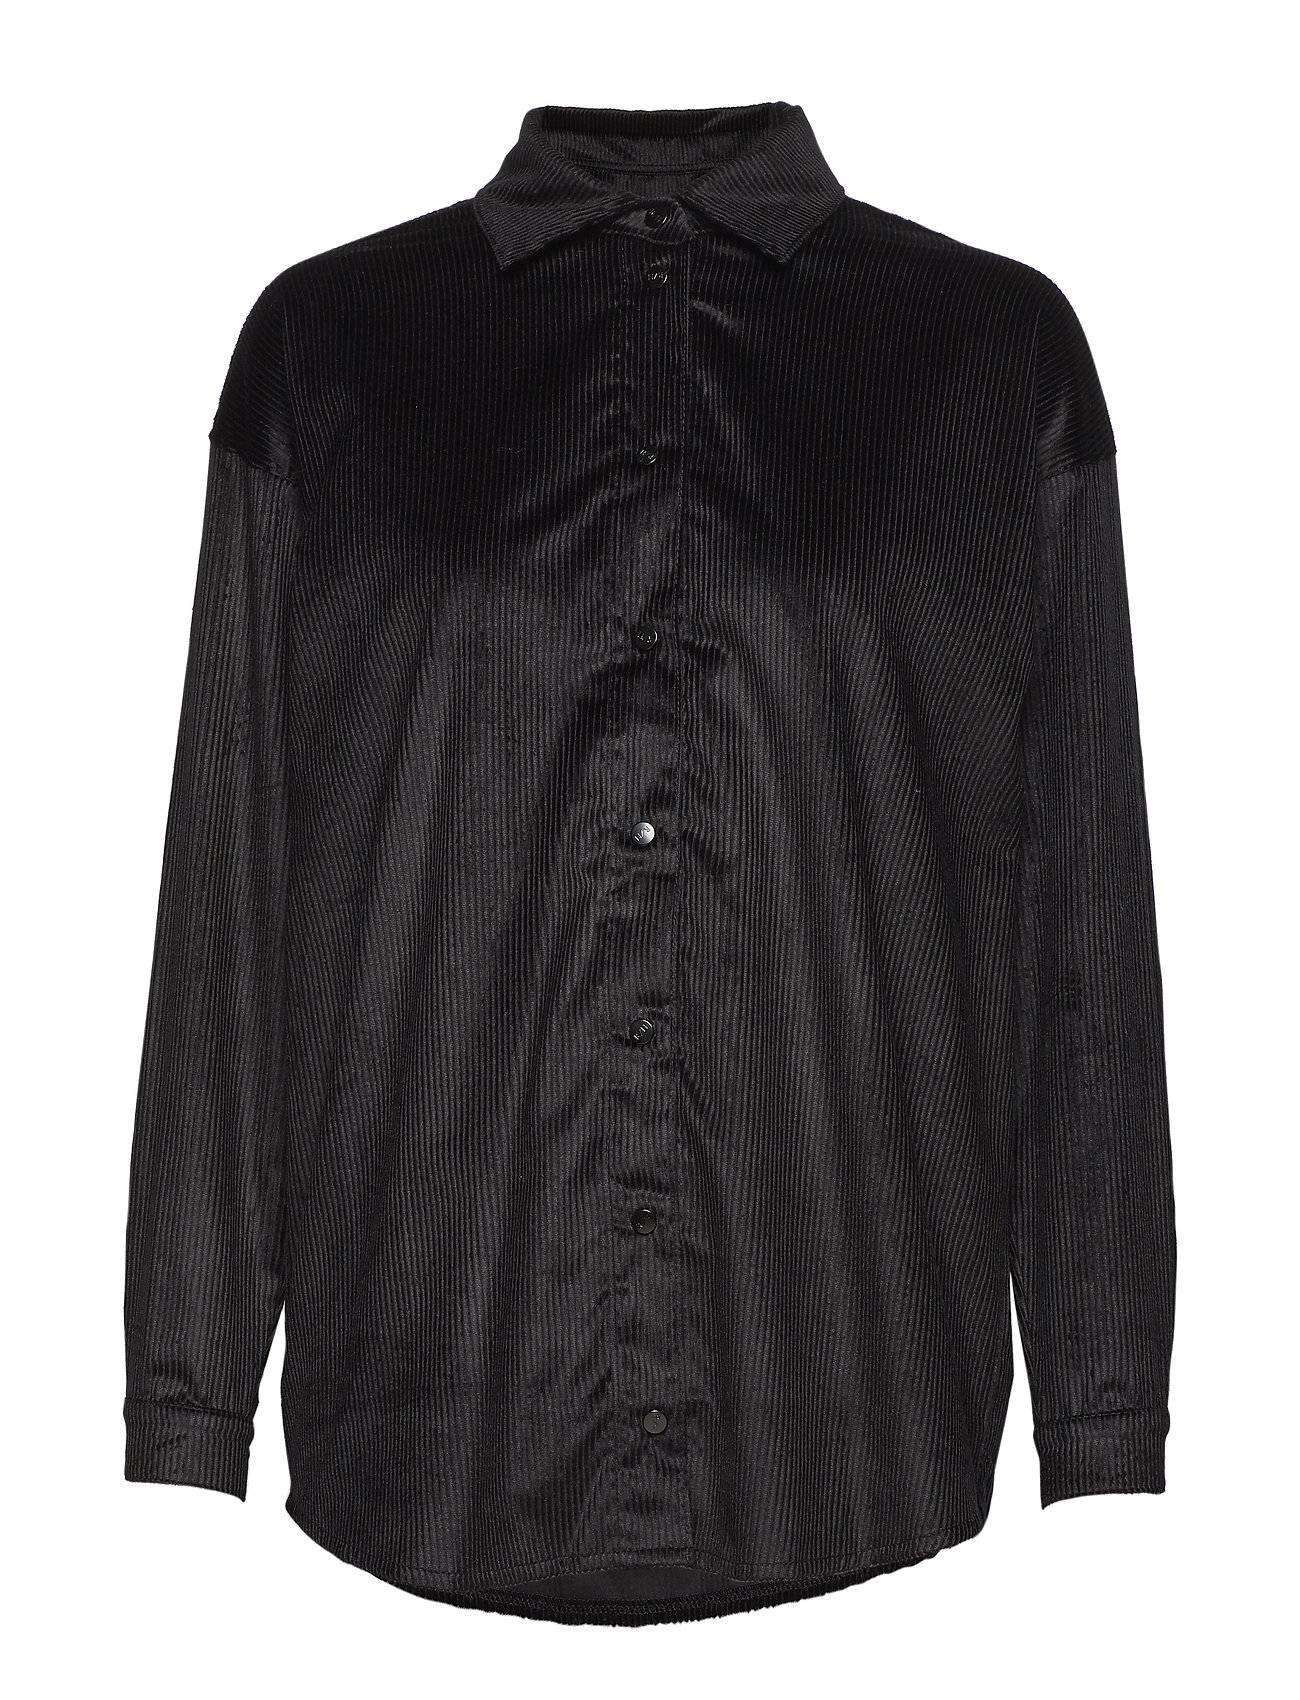 R/H Studio Abi Collar Shirt